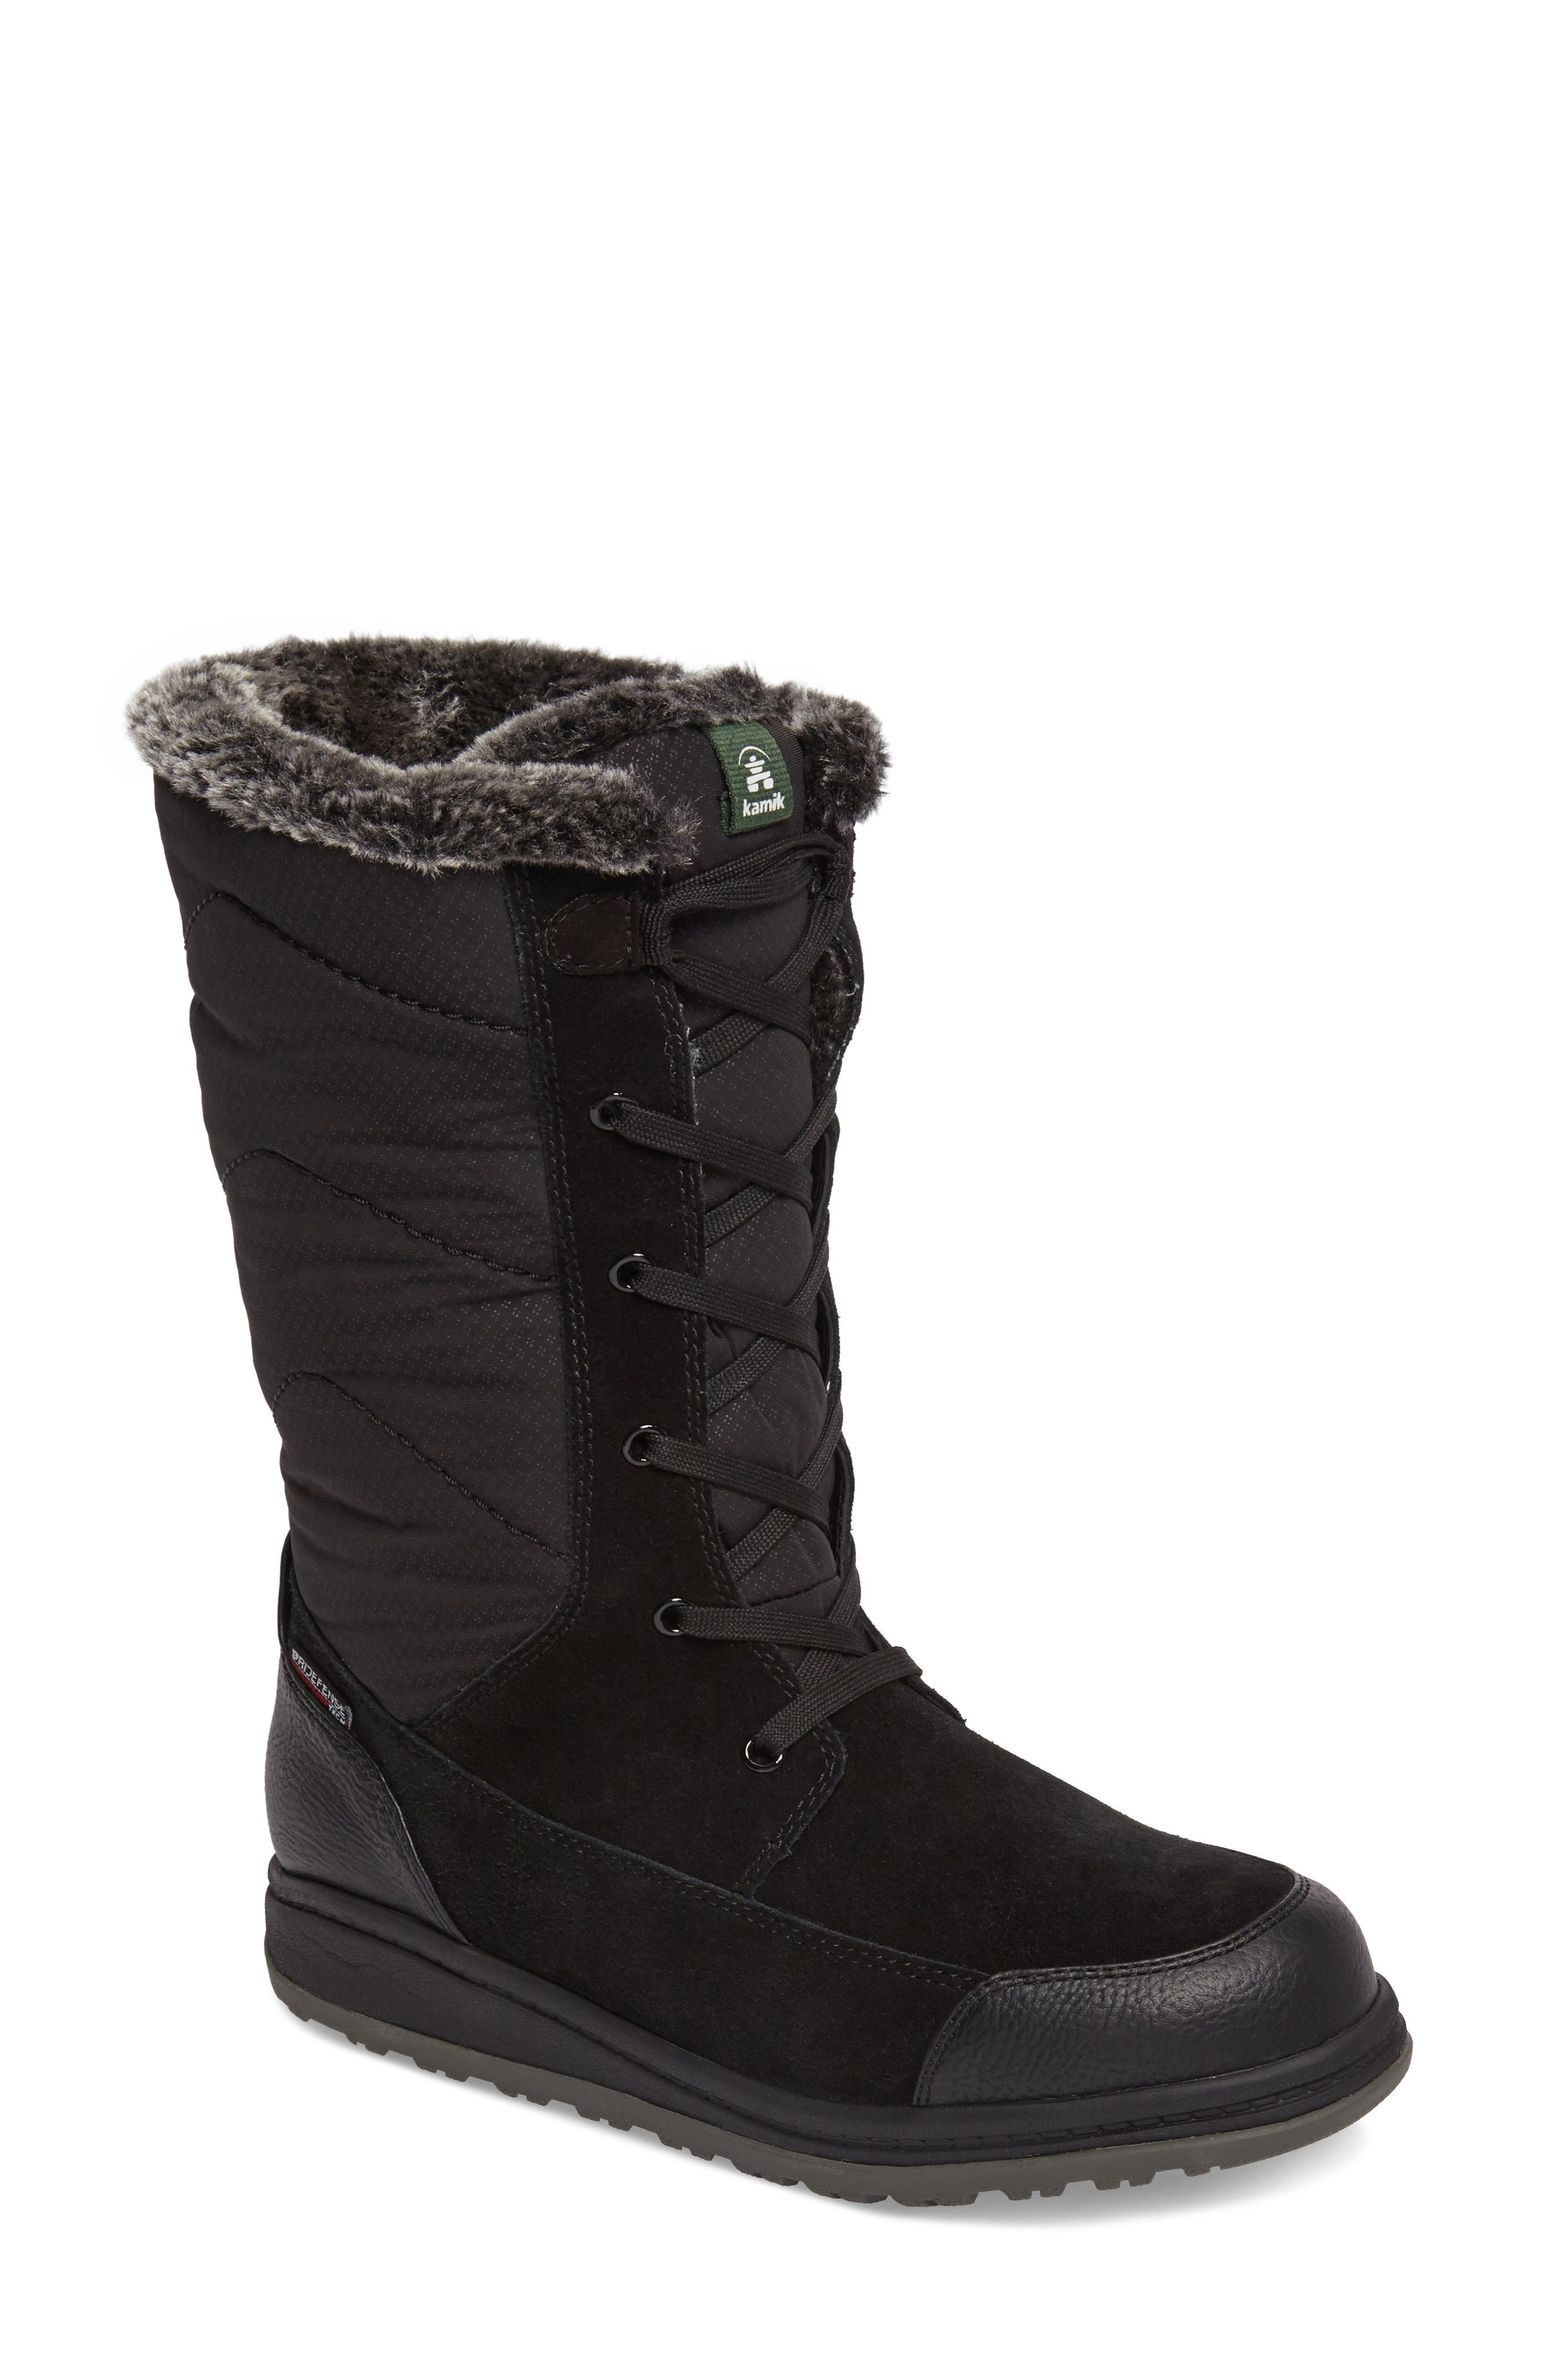 QuincyS Waterproof Boot,                         Main,                         color, BLACK FABRIC